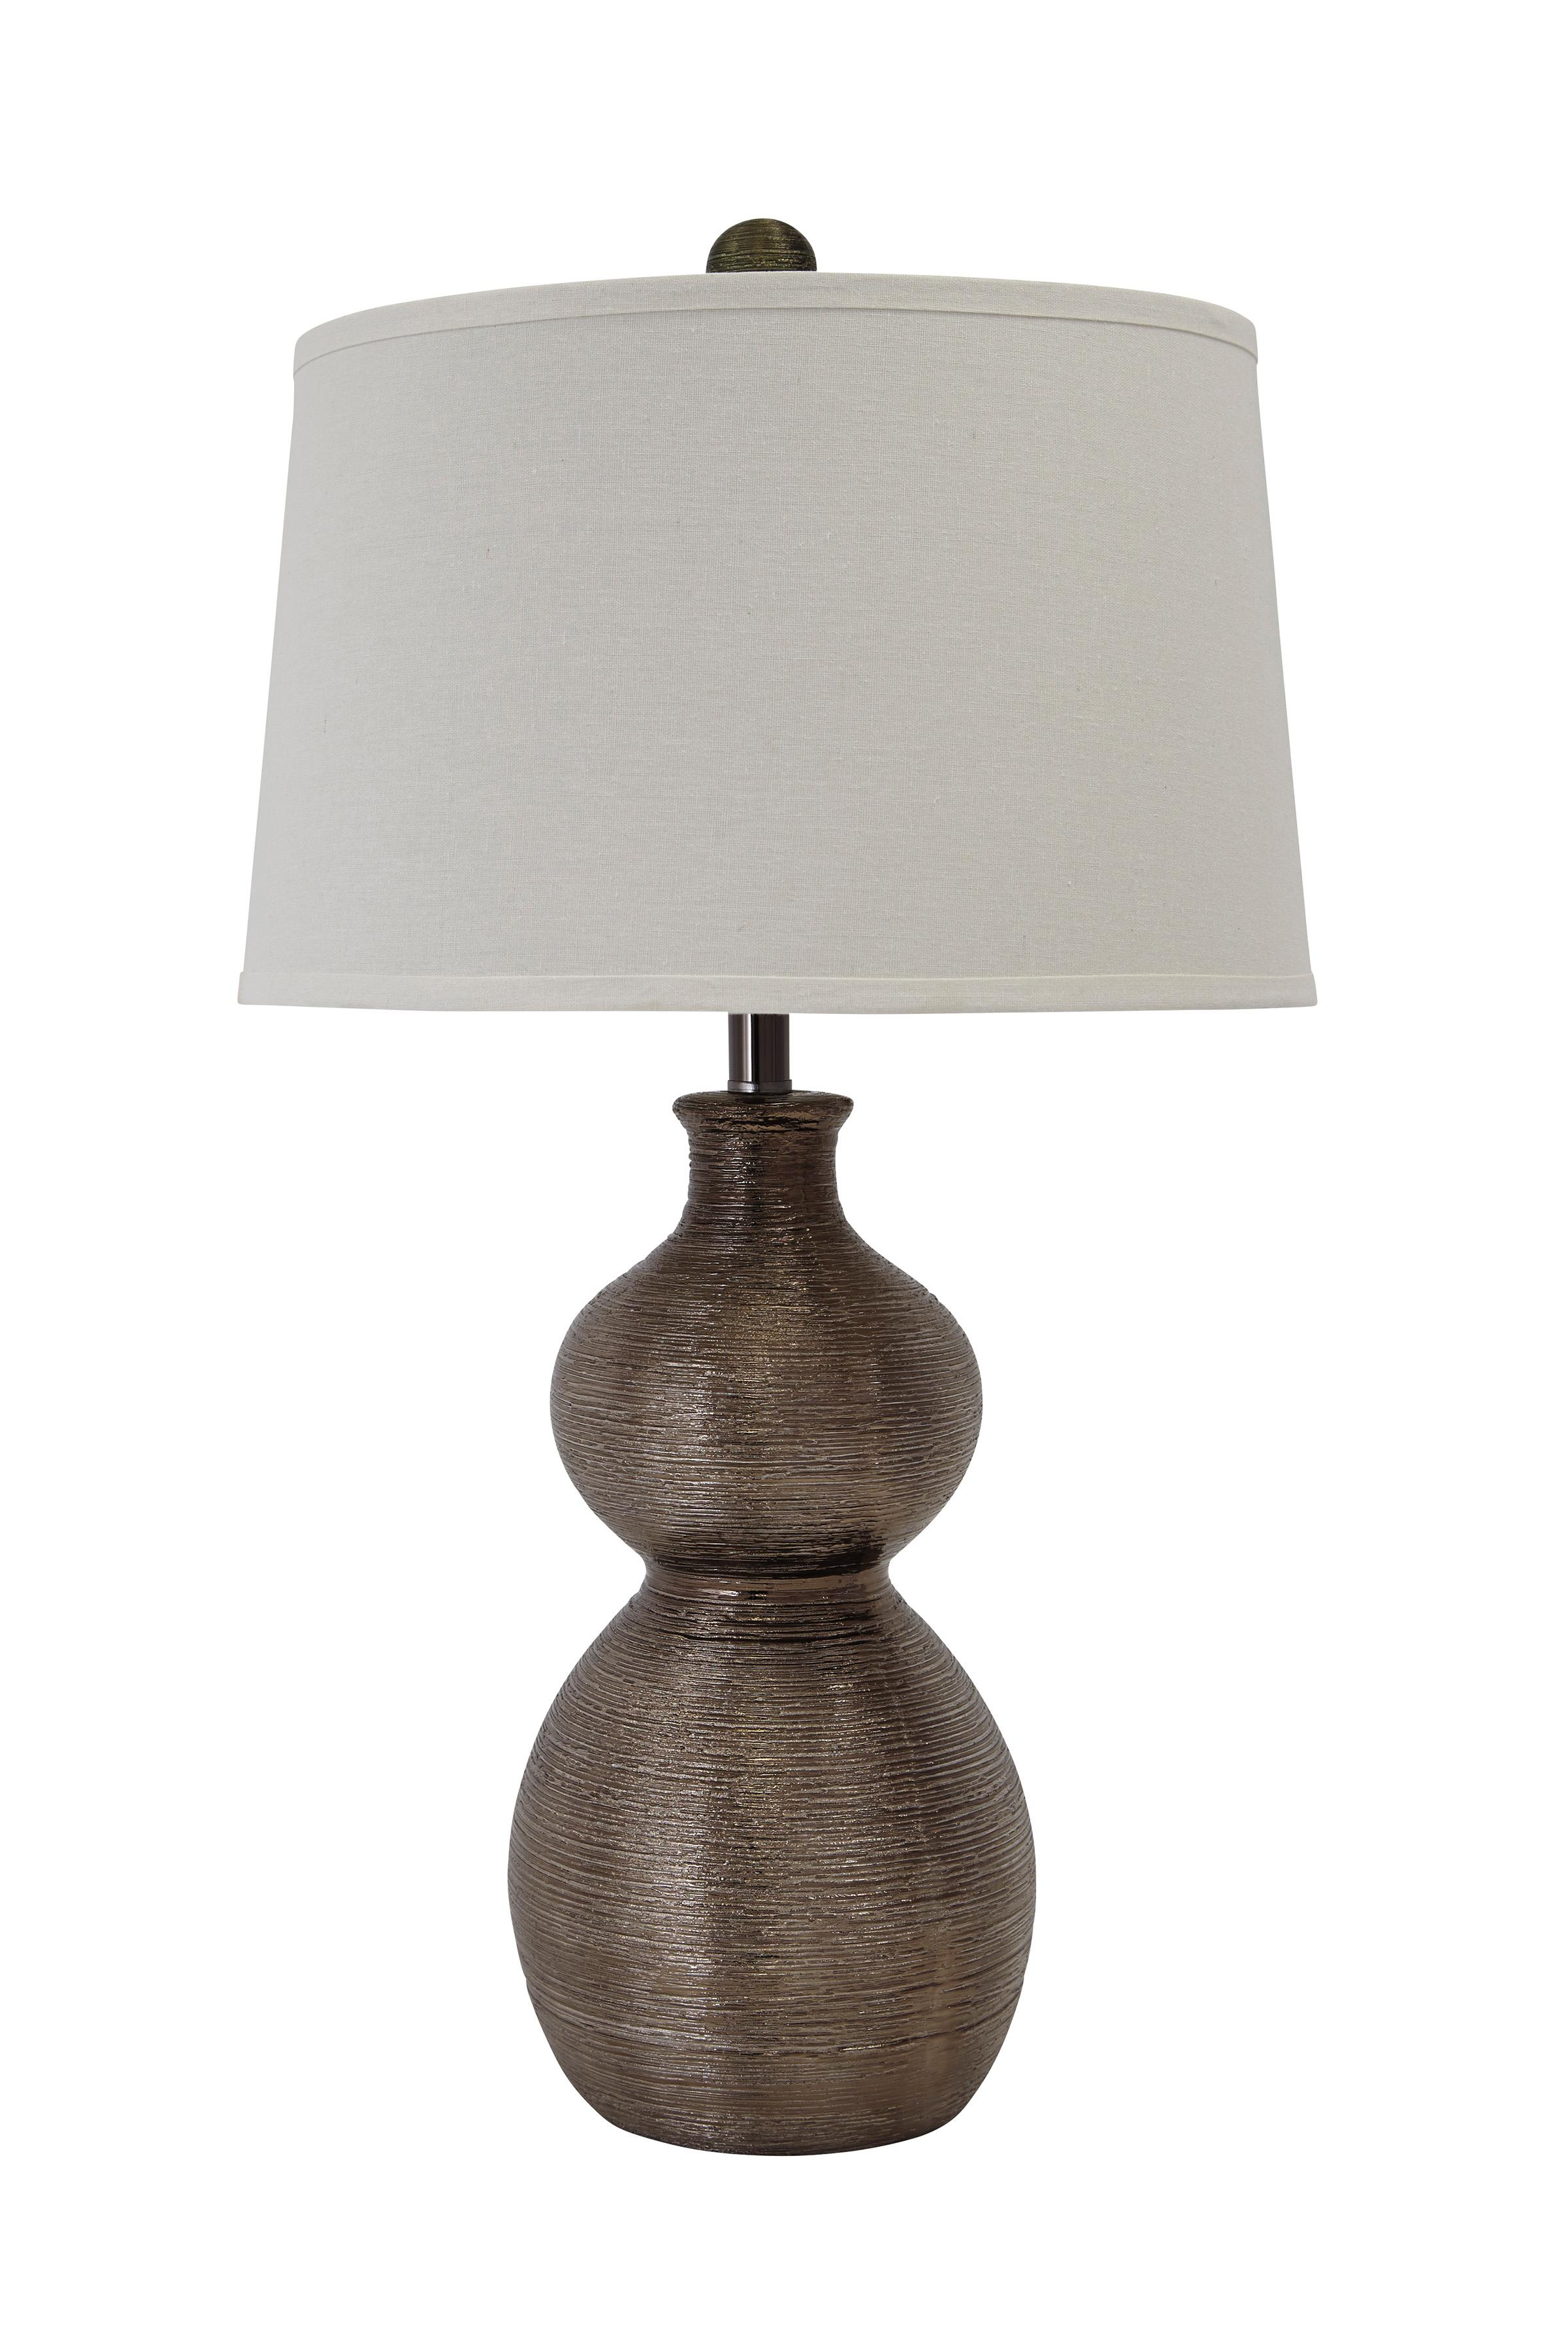 Signature Design by Ashley Lamps - Contemporary Poly Table Lamp  - Item Number: L235394